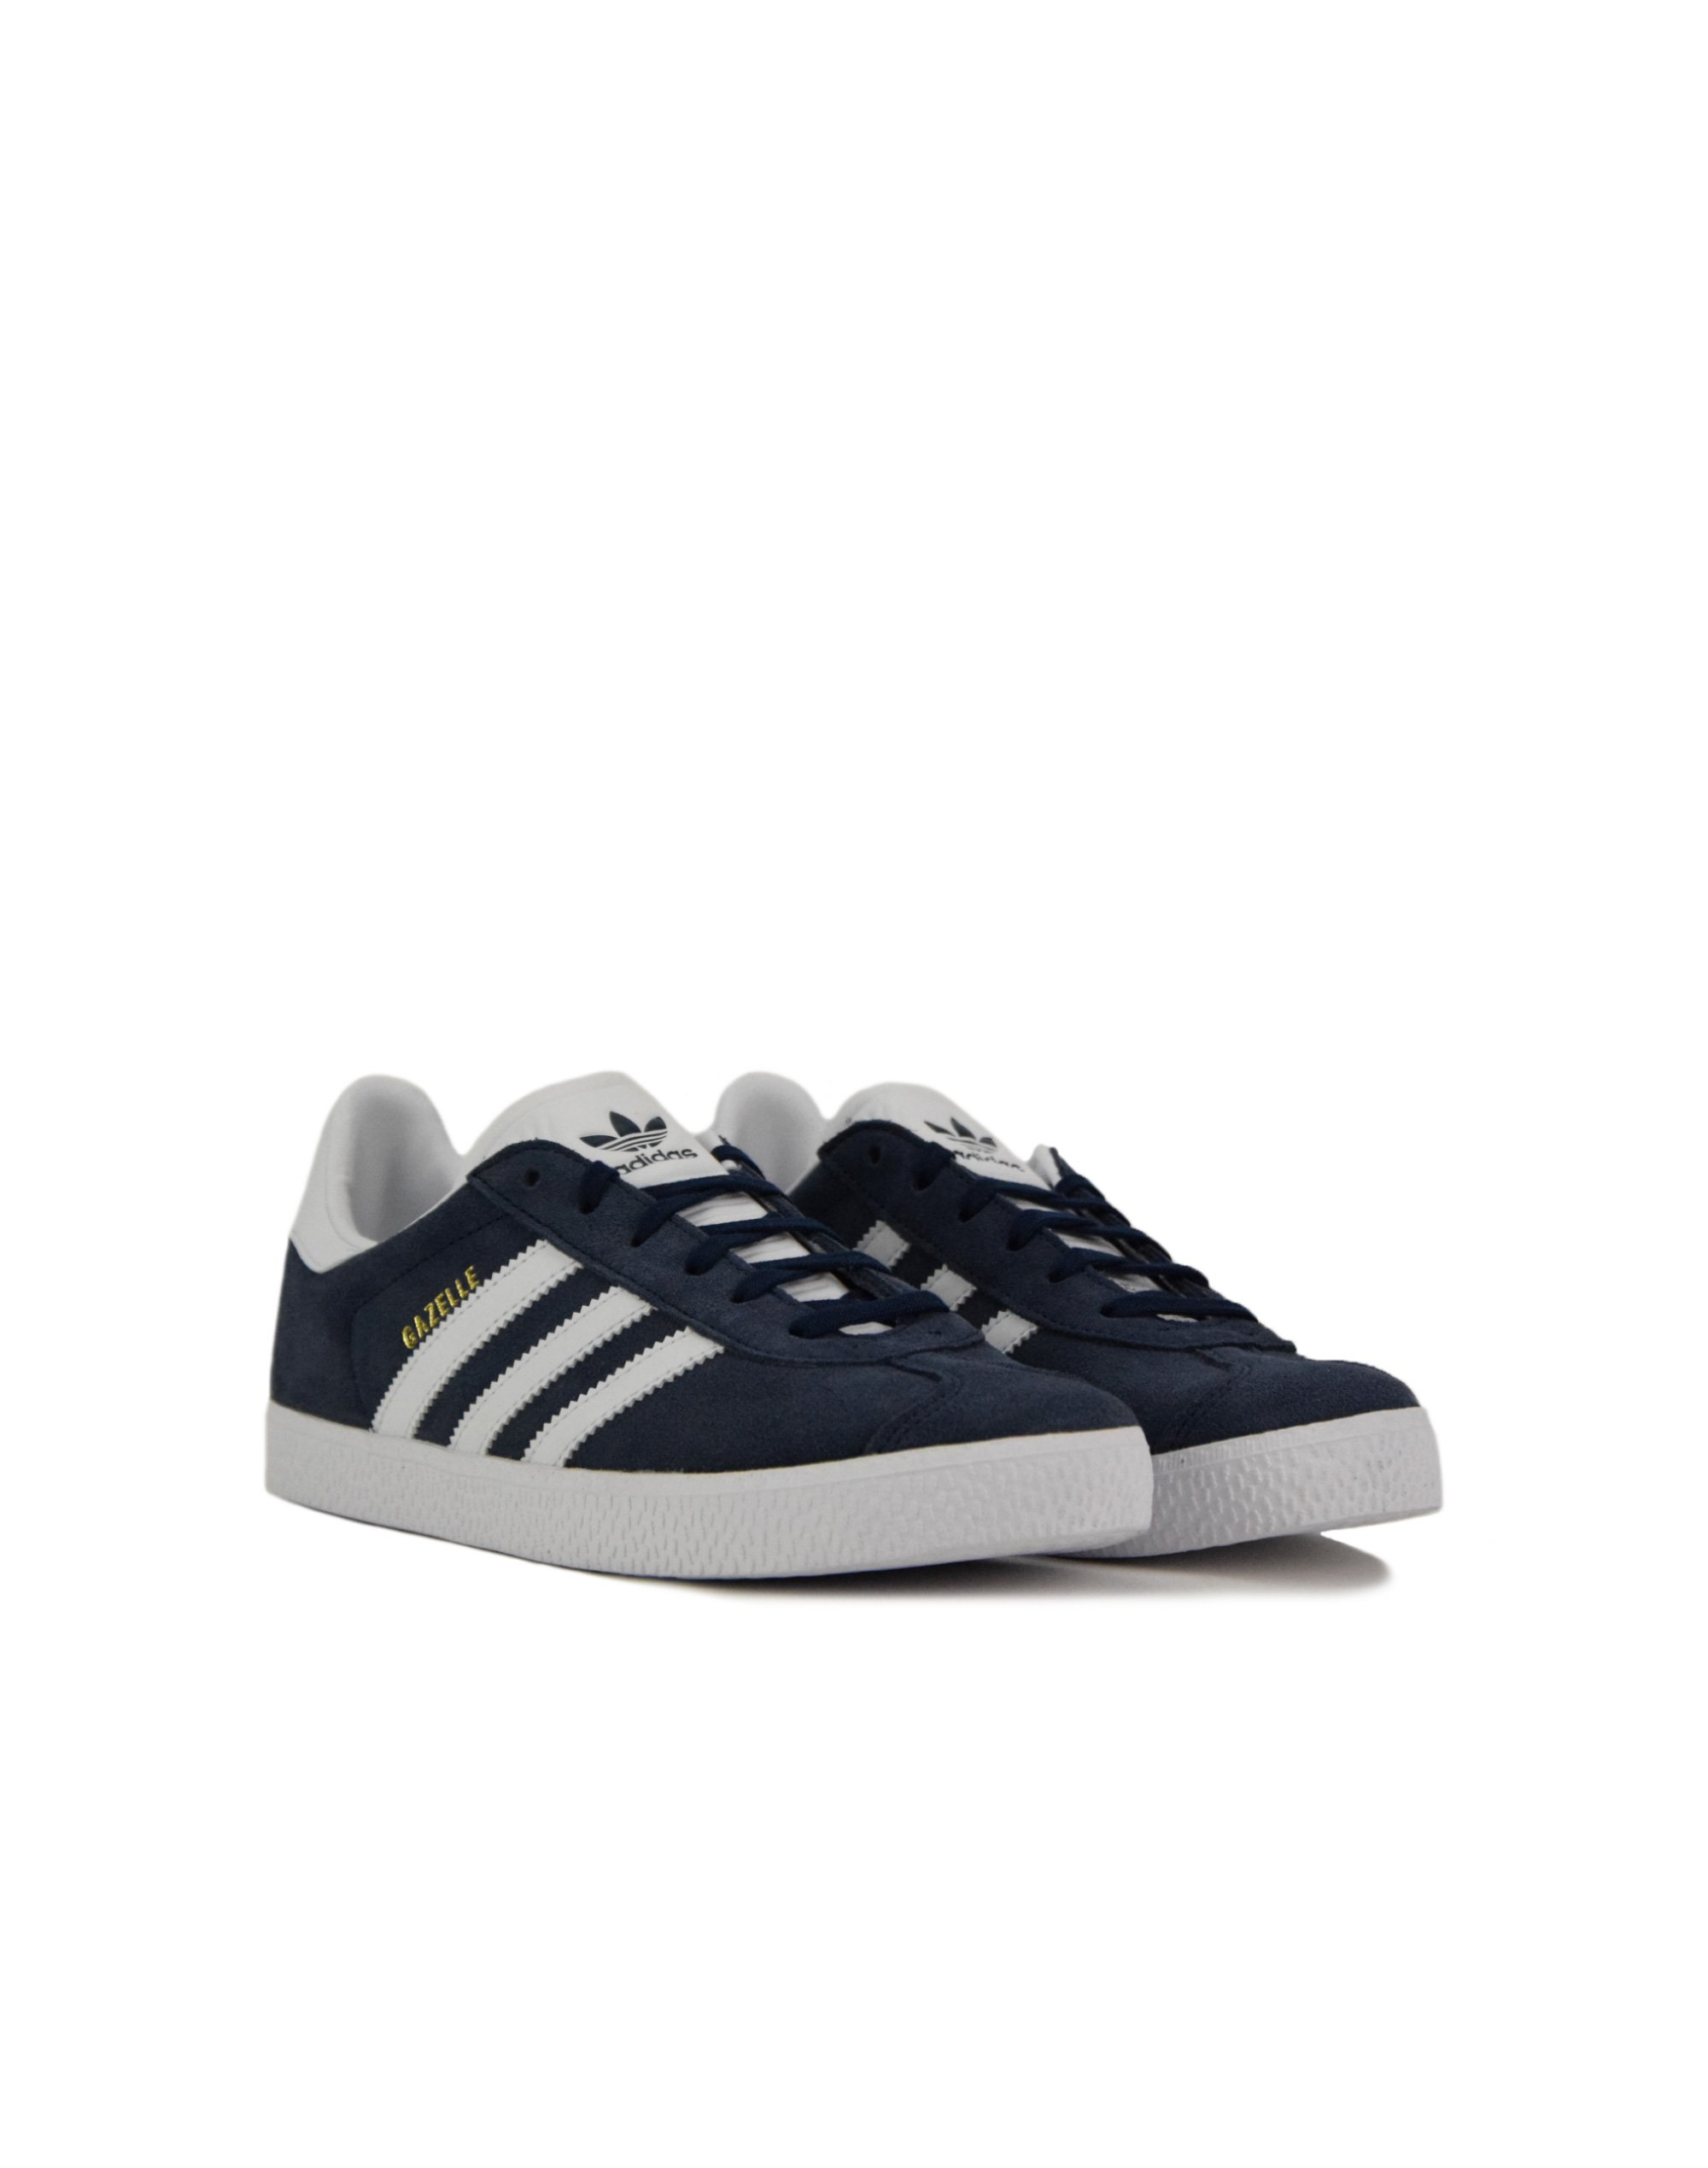 Adidas Gazelle J (BY9144) Navy/White